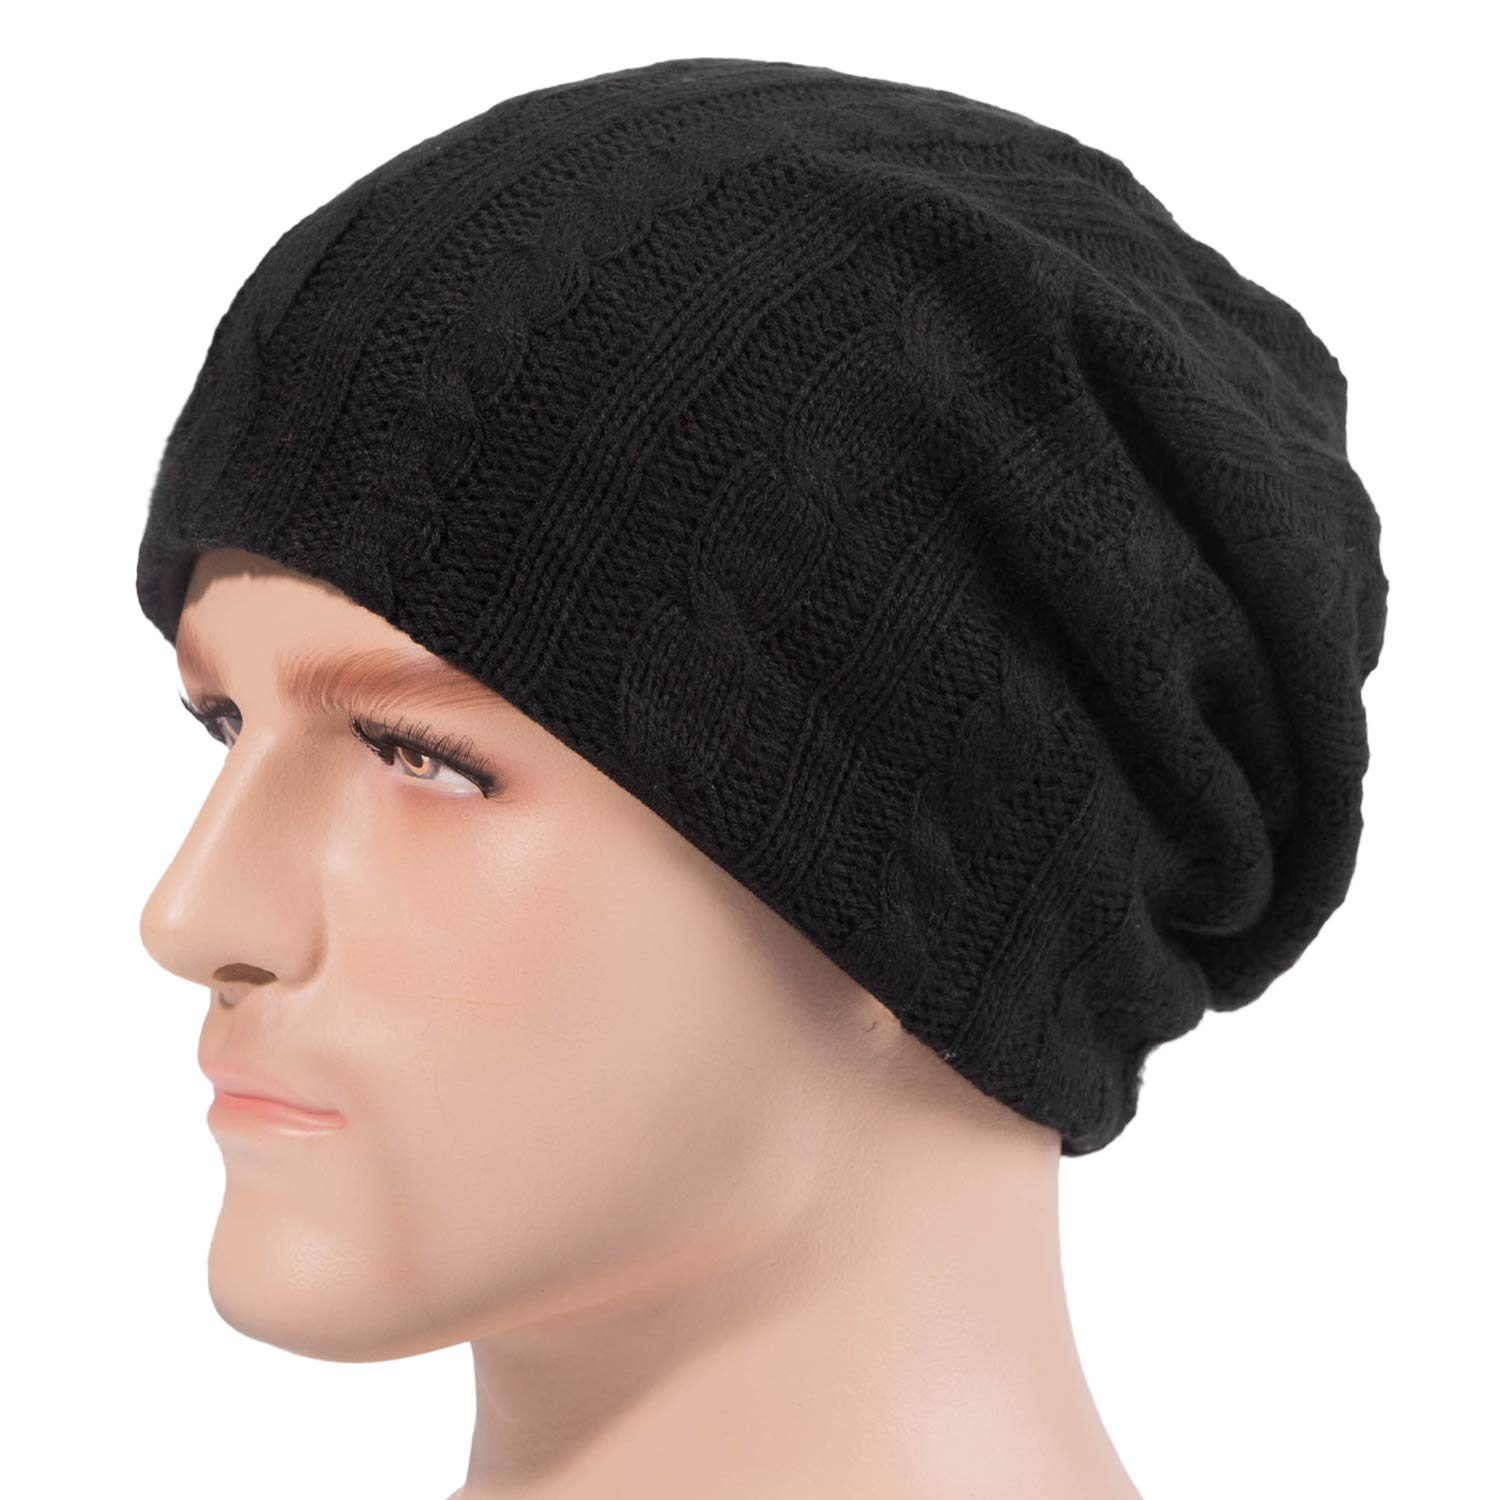 f68a1ae4312 BOMEIMIN Beanie Men Women - Unisex Knit Hat Skull Cap at Amazon Men s  Clothing store